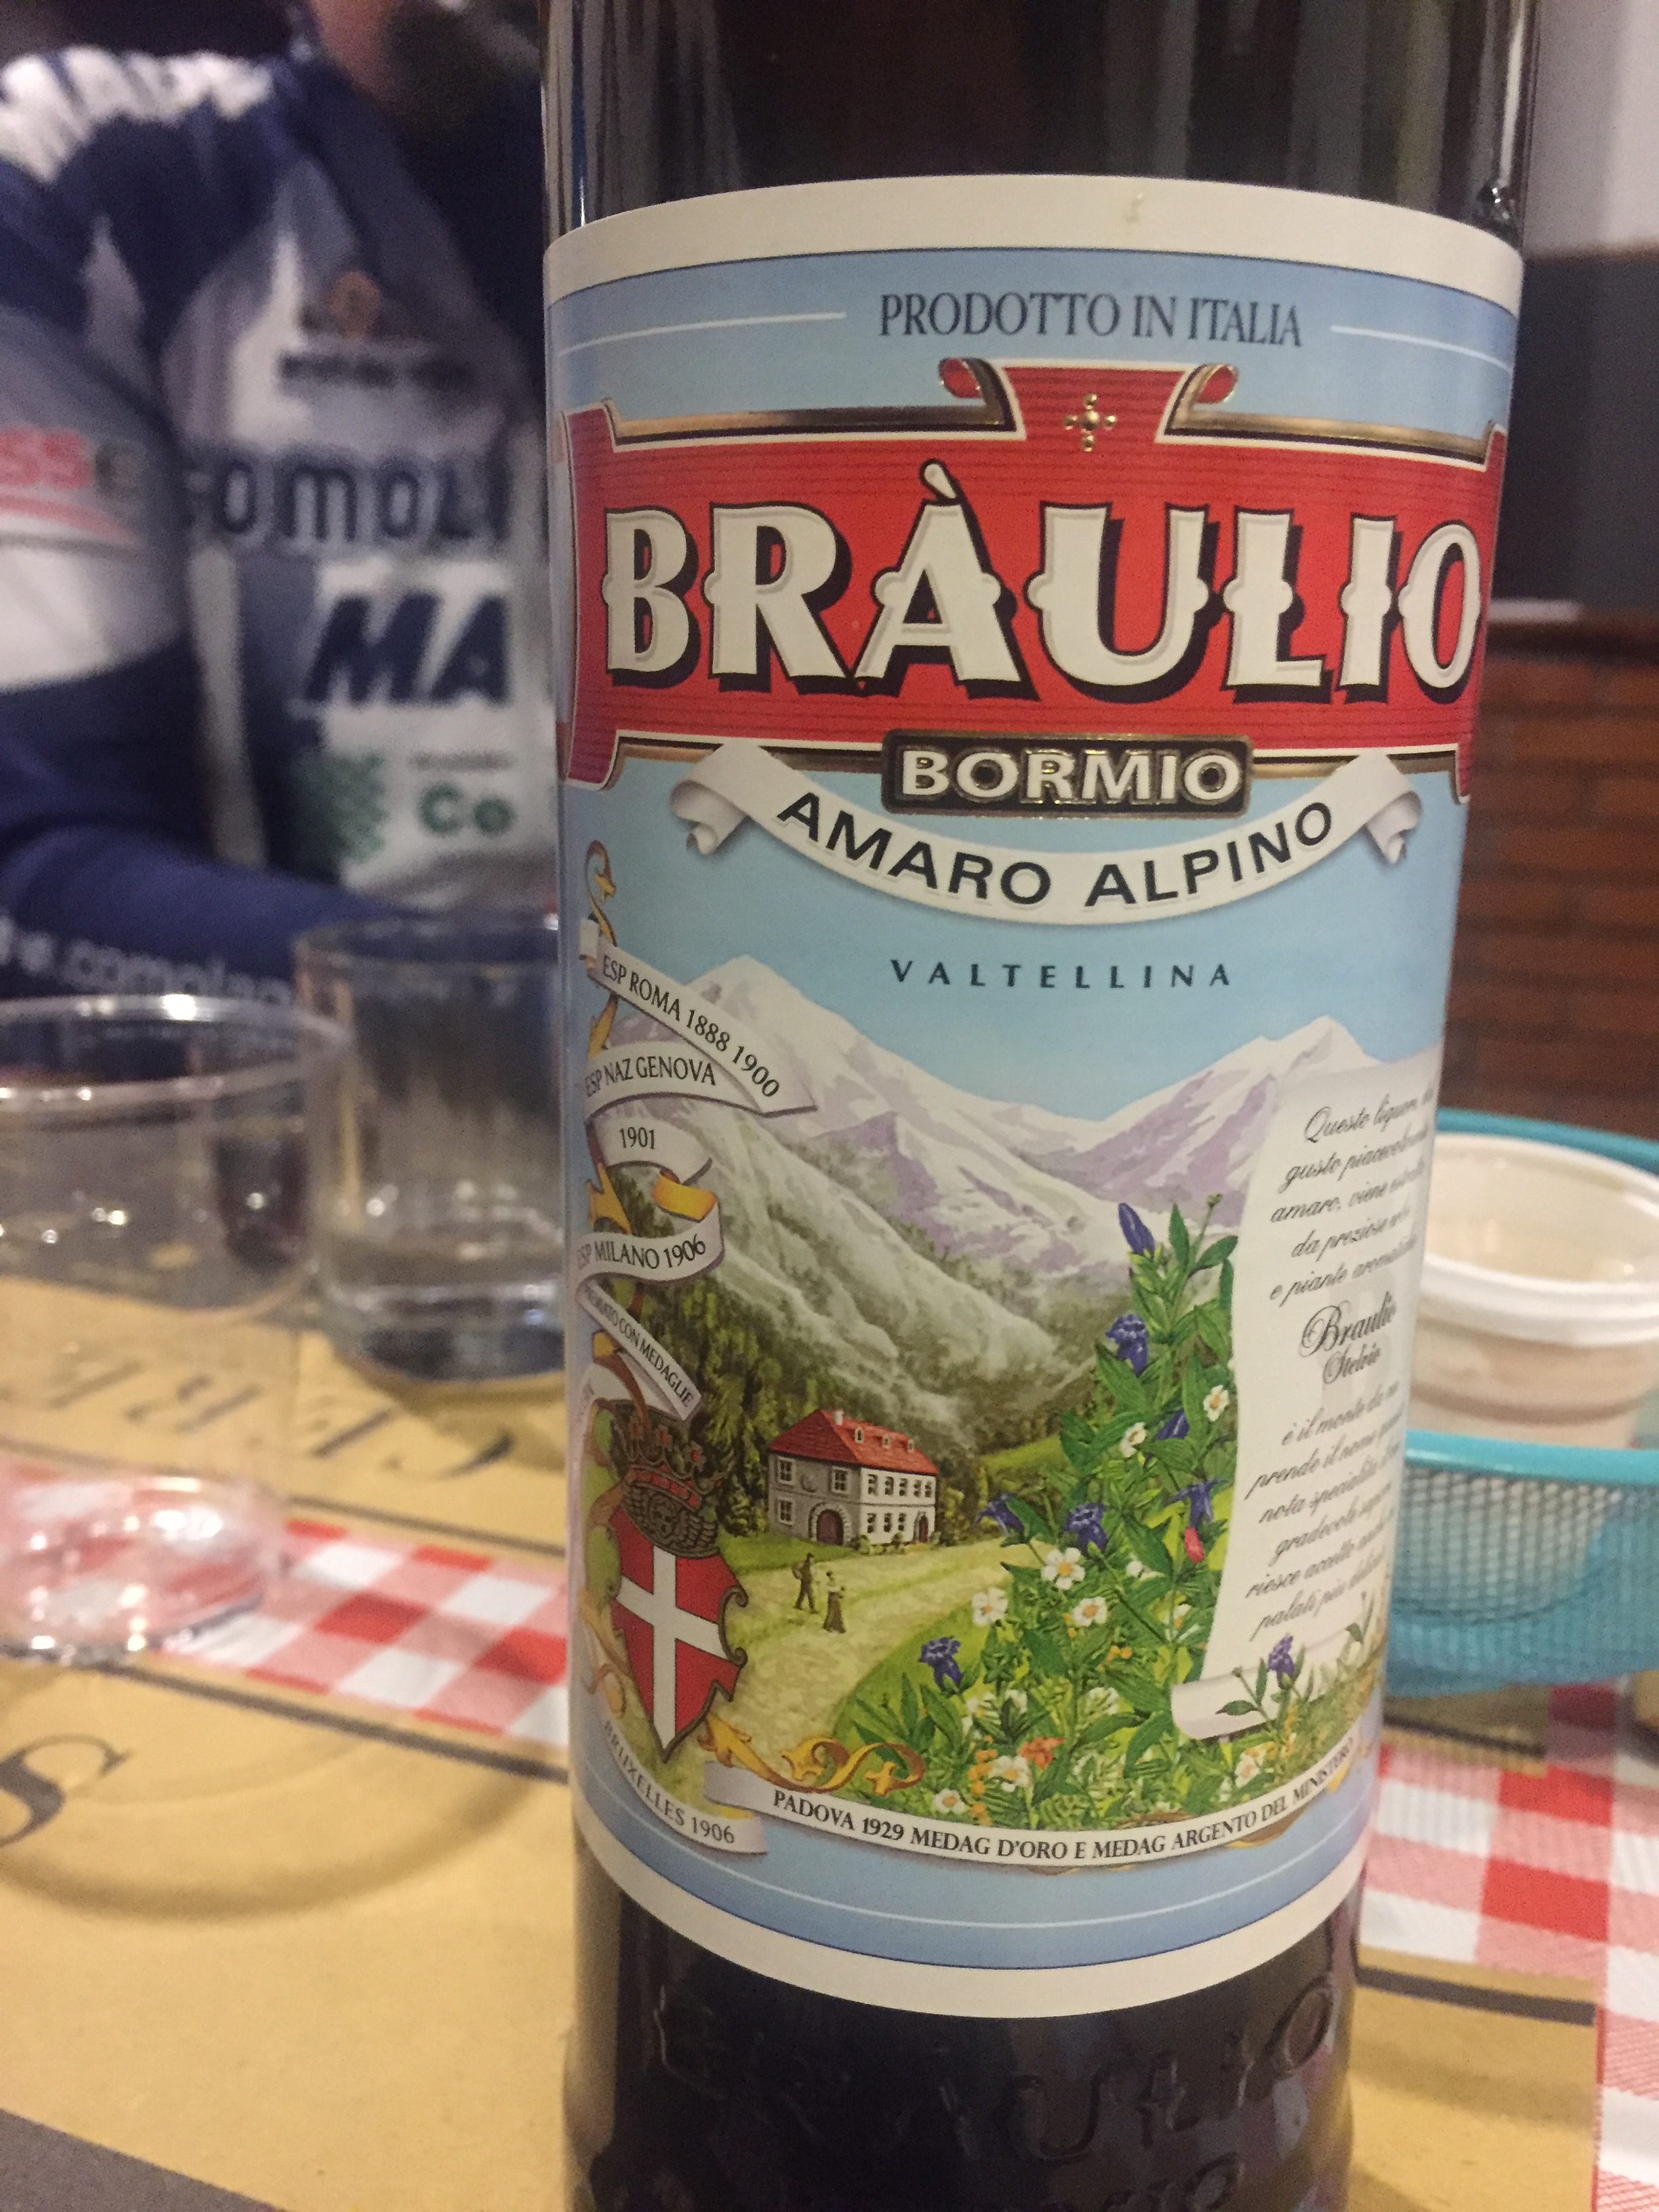 Fueled by Braulio